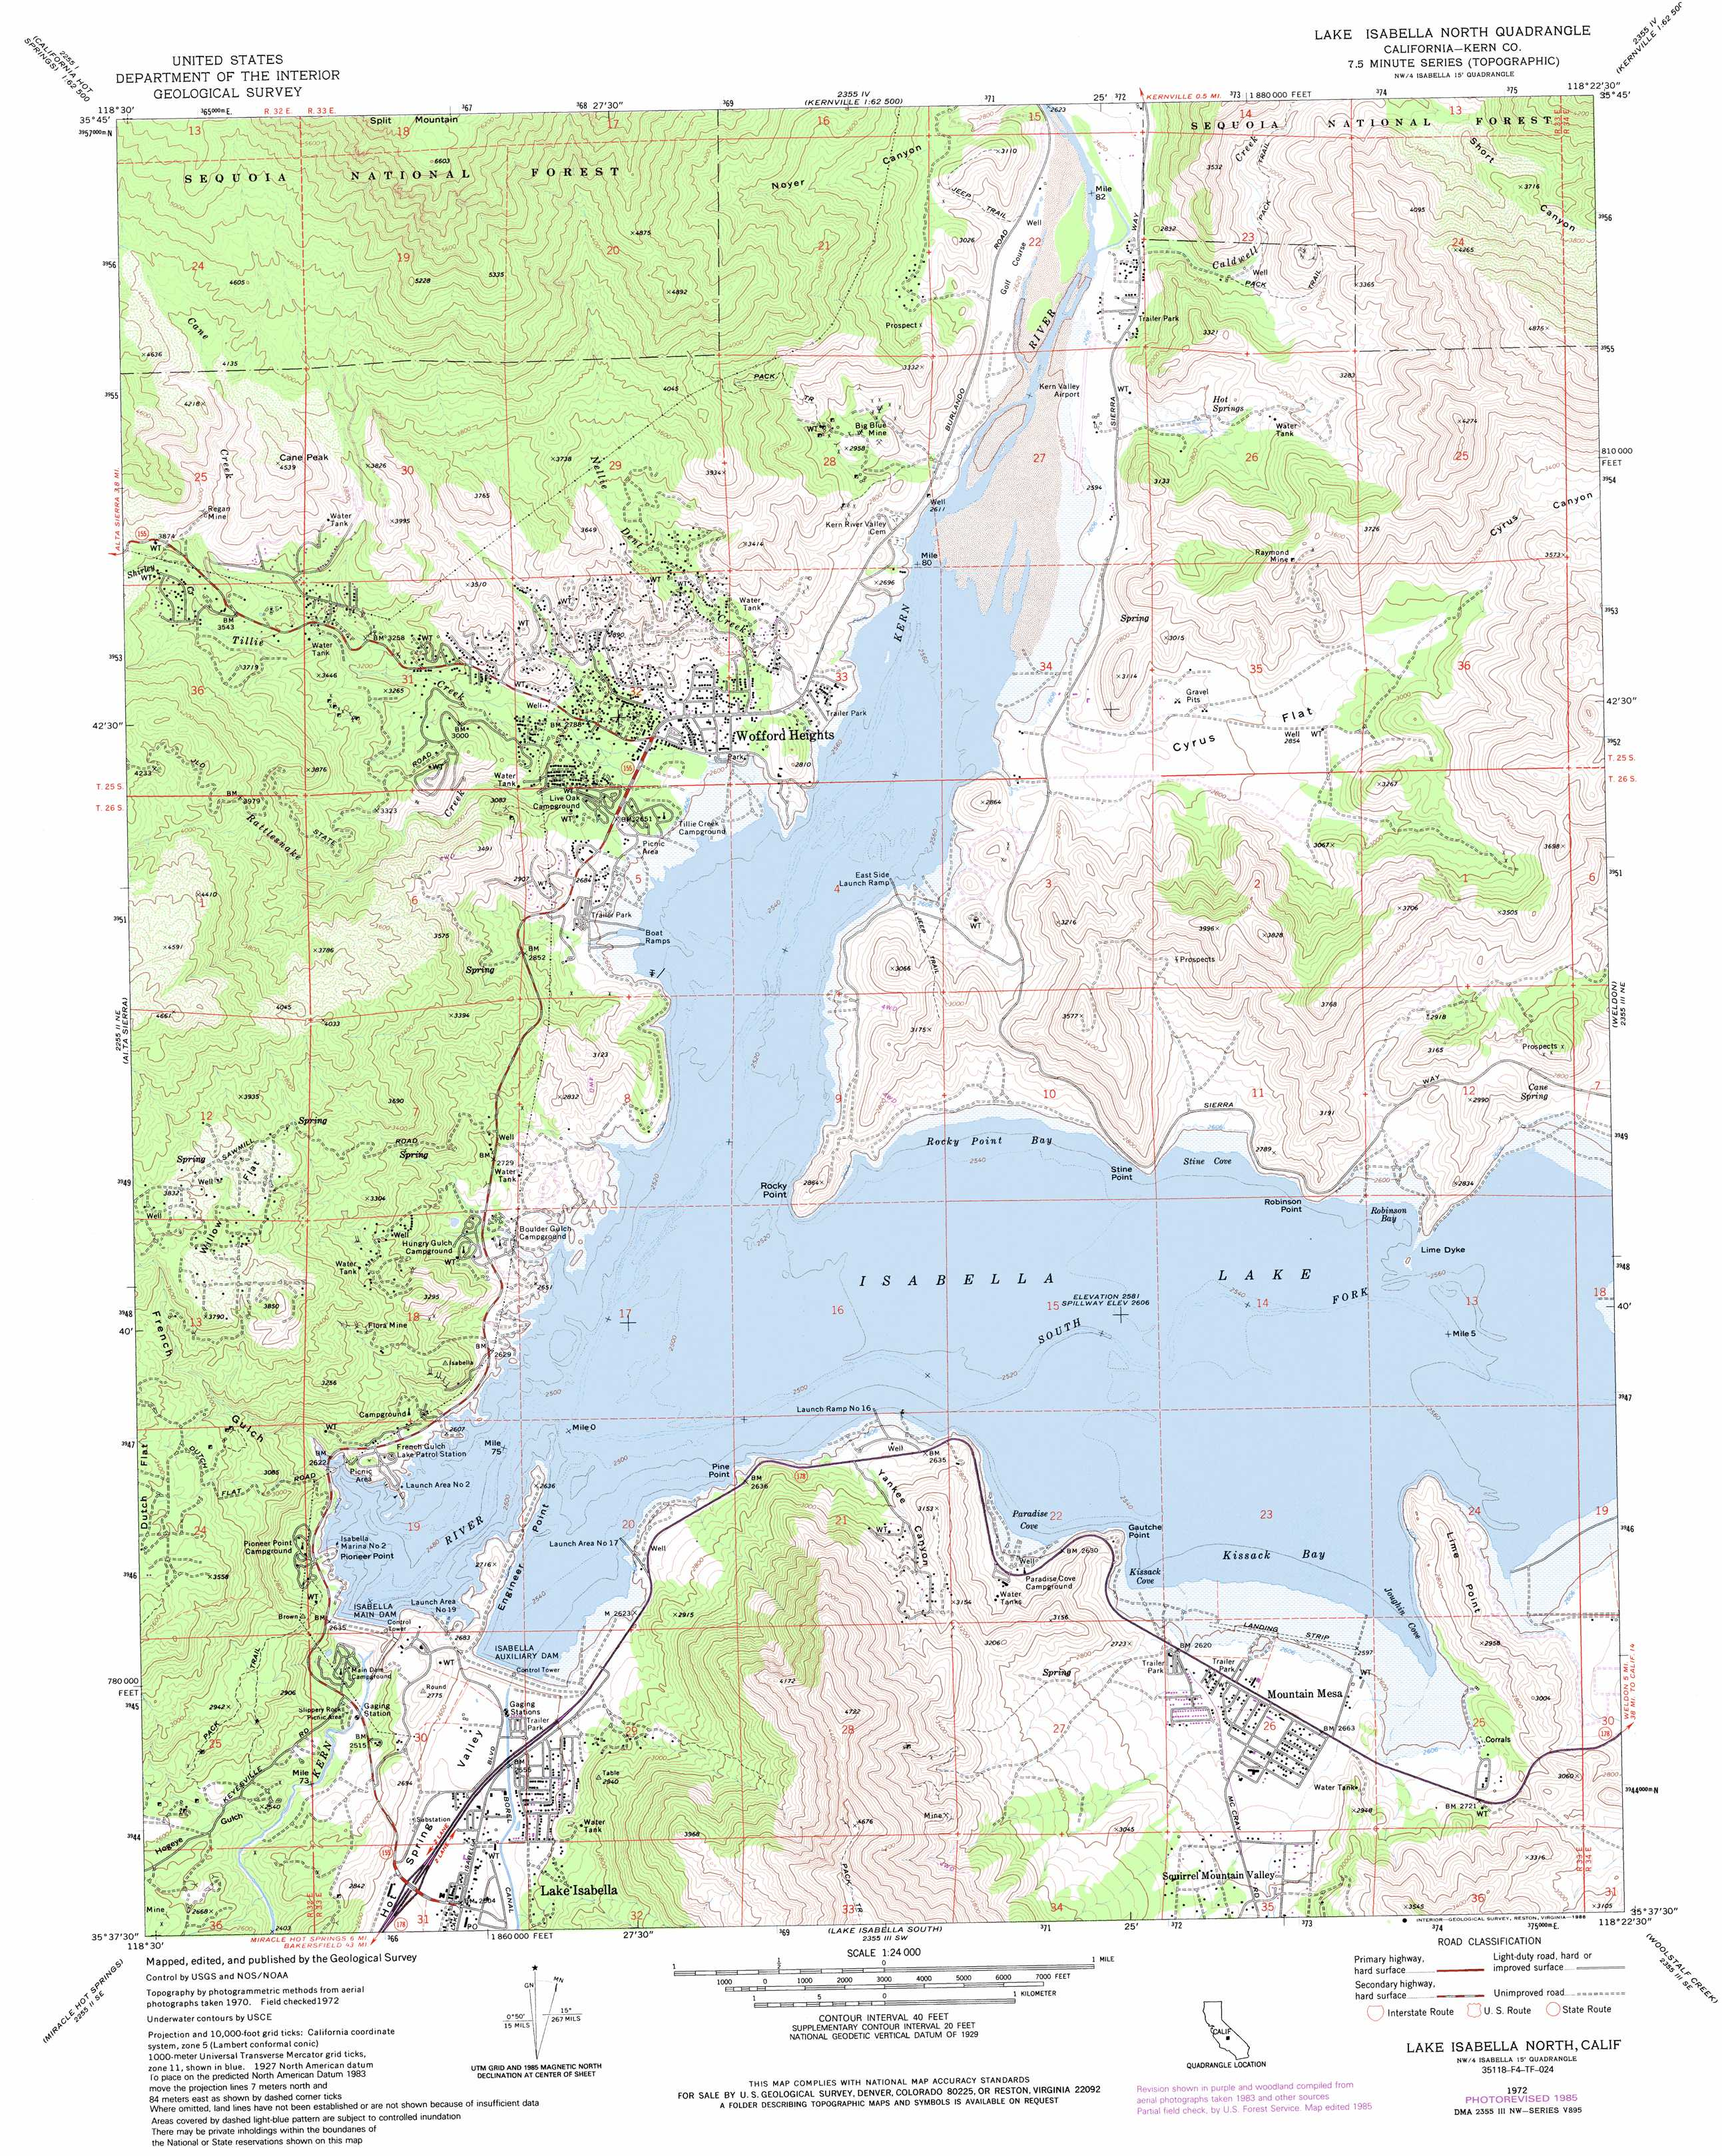 florida topographic map with 35118f4 on 40089e6 as well 35118f4 moreover Maine Reference Map 493 as well 40110f8 further Ai Topo.